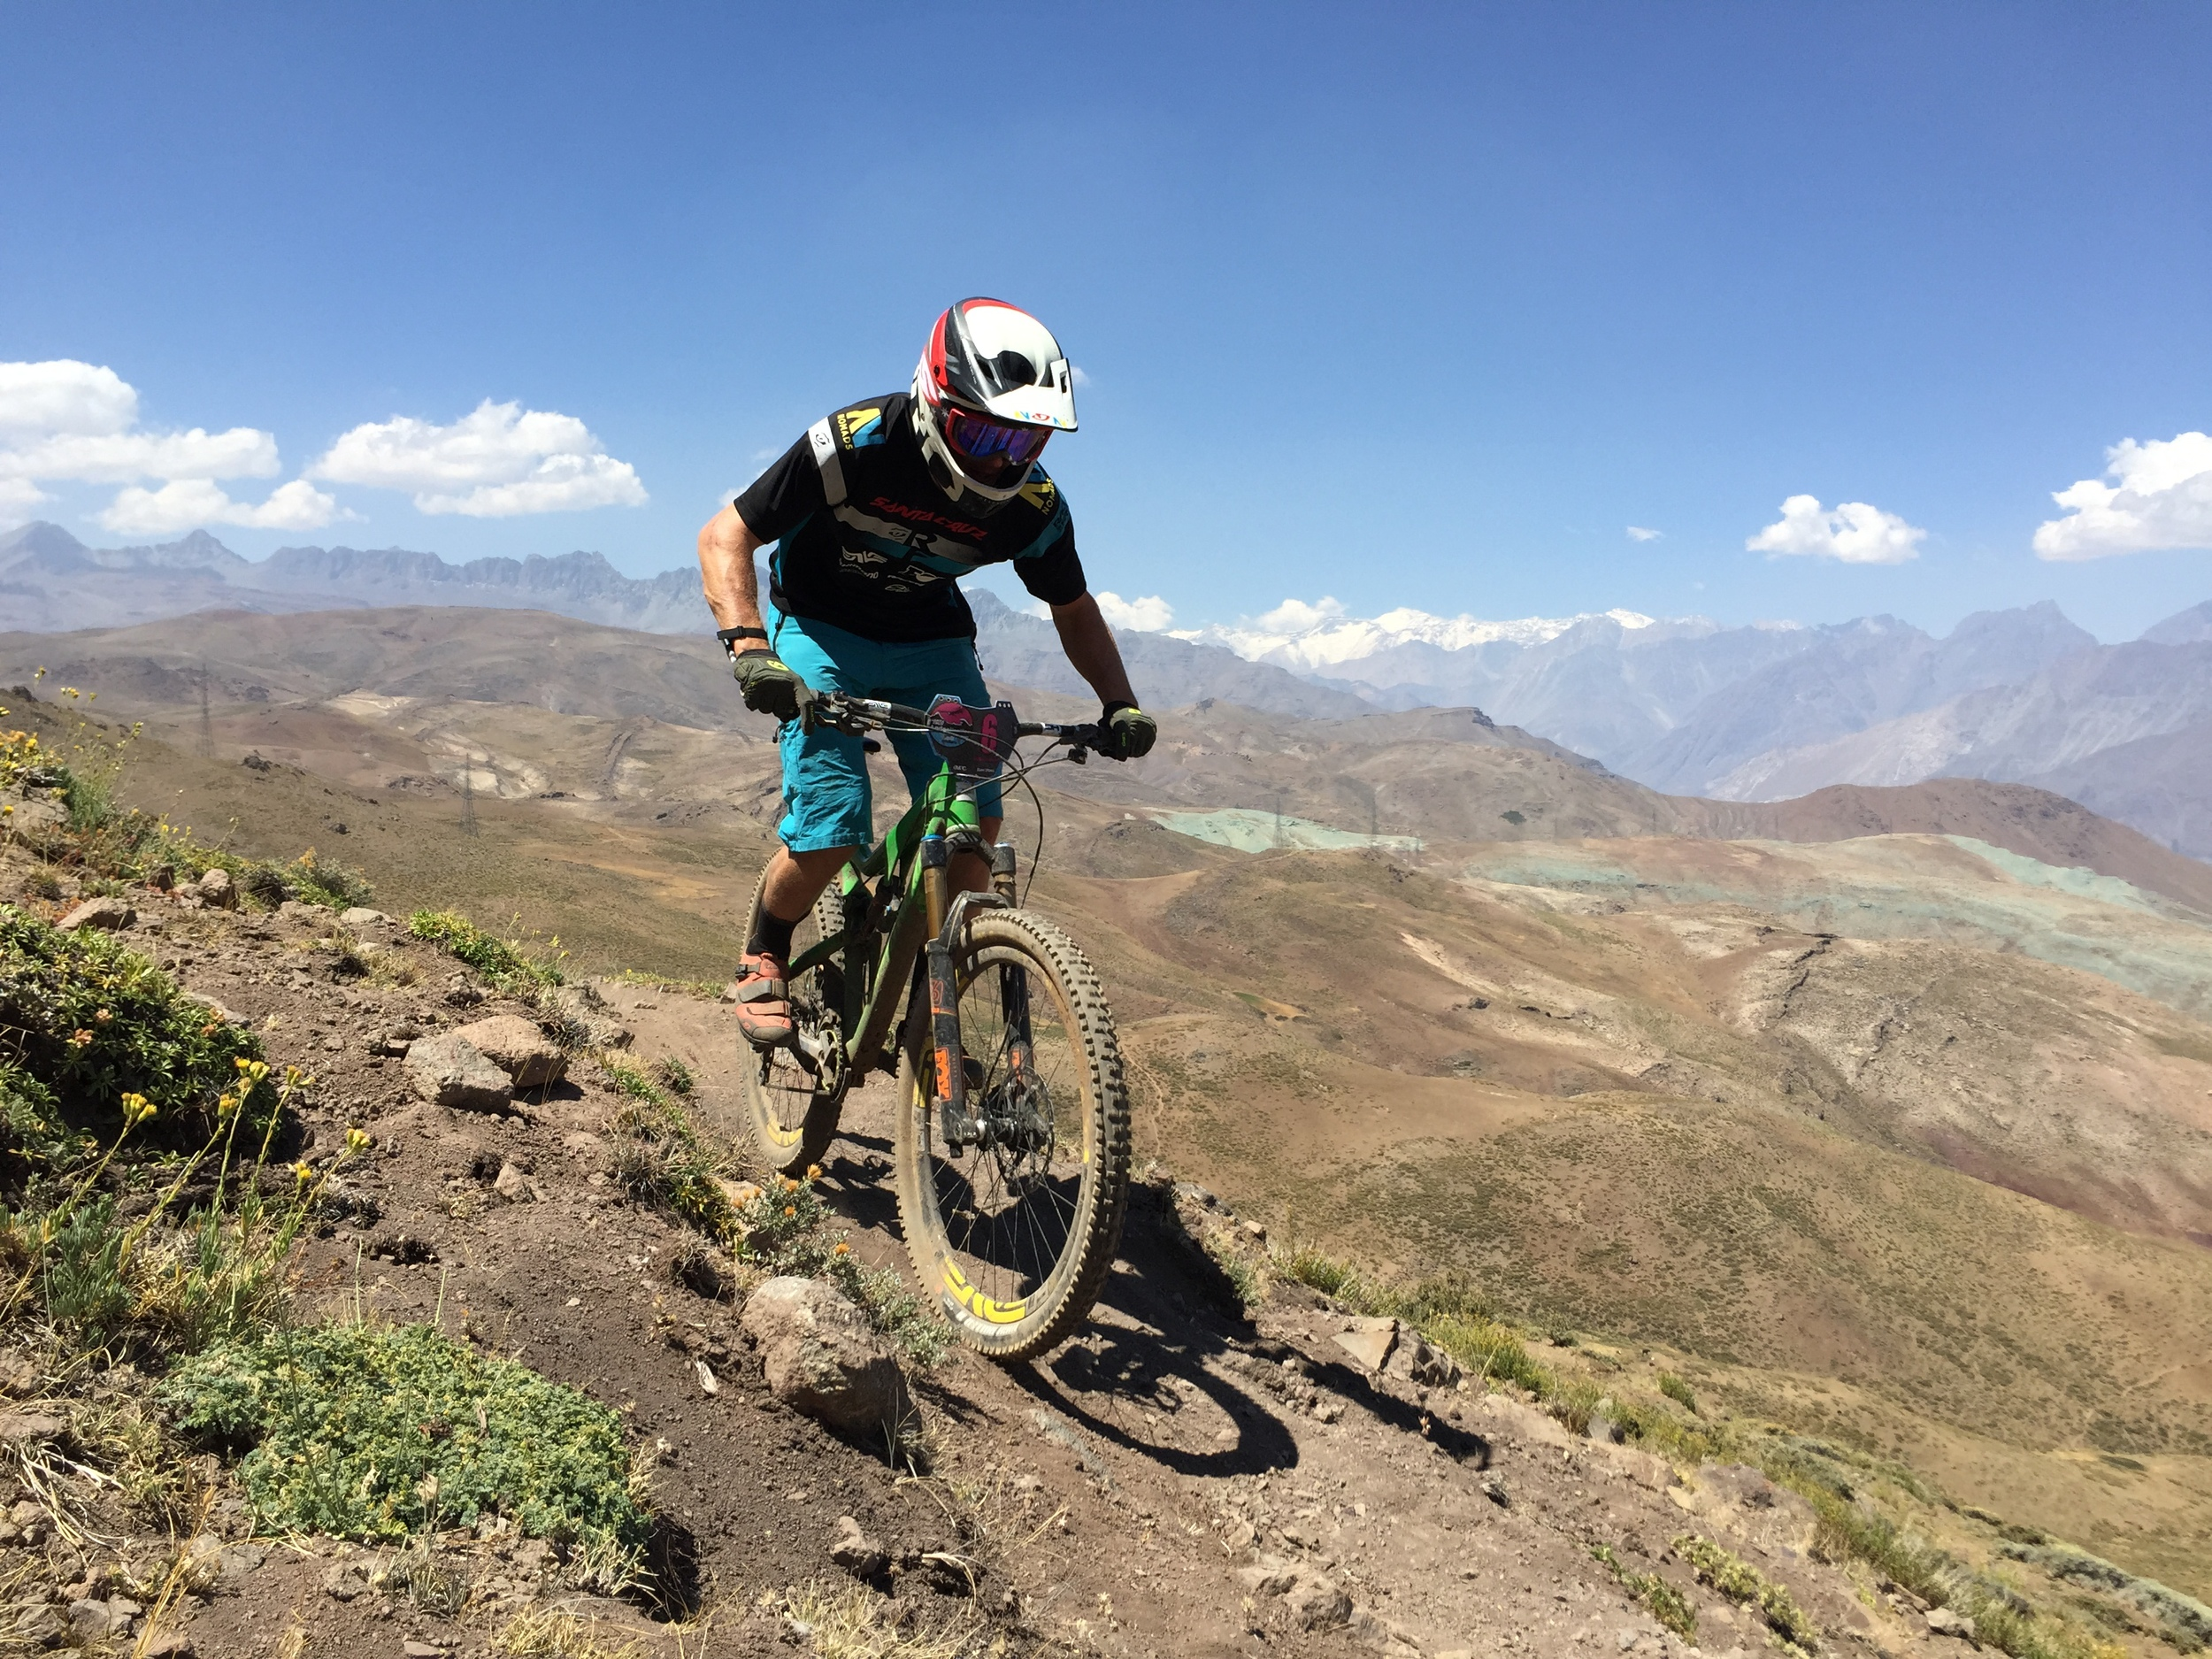 Enjoying some alpine single track high in the Andes during the transfer stages.